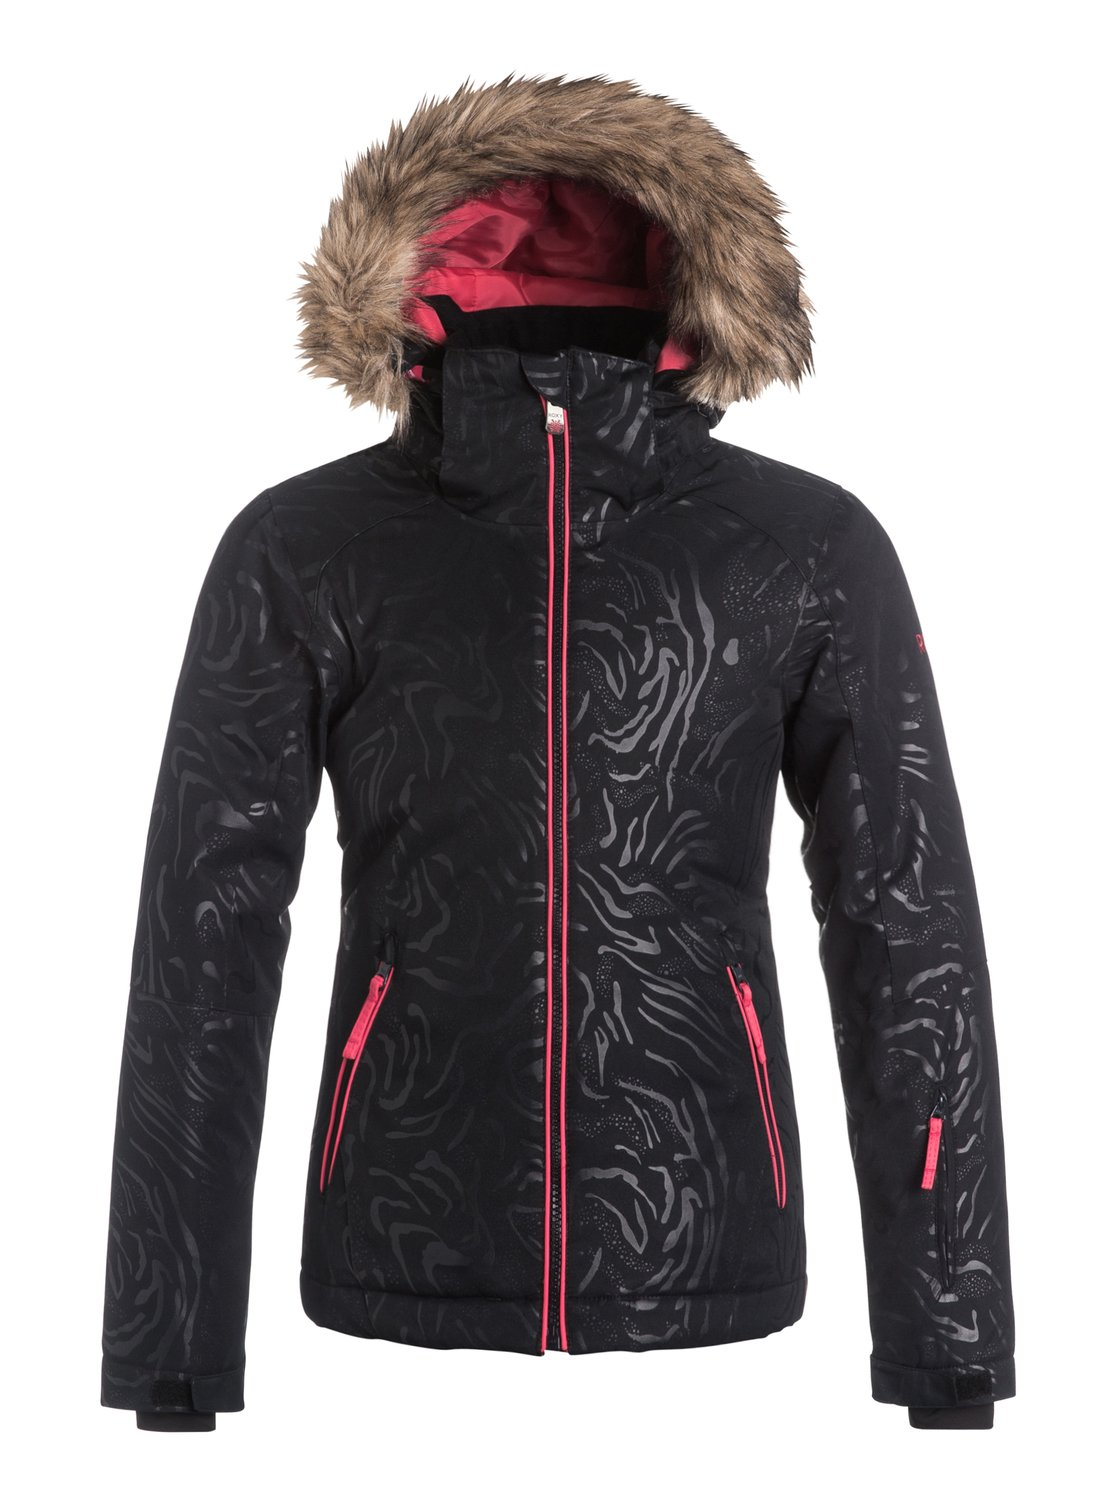 Сноубордическая детская куртка Jet Ski SolidTheres more to the Jet Ski Solid snow jacket for girls than meets the eye. The bold colourways are brought to life with a beautiful all-over embossed pattern and come complete with removable cosy faux-fur on the hood. 10K ROXY DryFlight® technology waterproofing provides reliable waterproof and breathable protection, a slim fit is sporty yet feminine, Warmflight® insulation level 3 is cosy on the coldest winter days and critically-taped seams offer extra protection in the most exposed areas.<br>